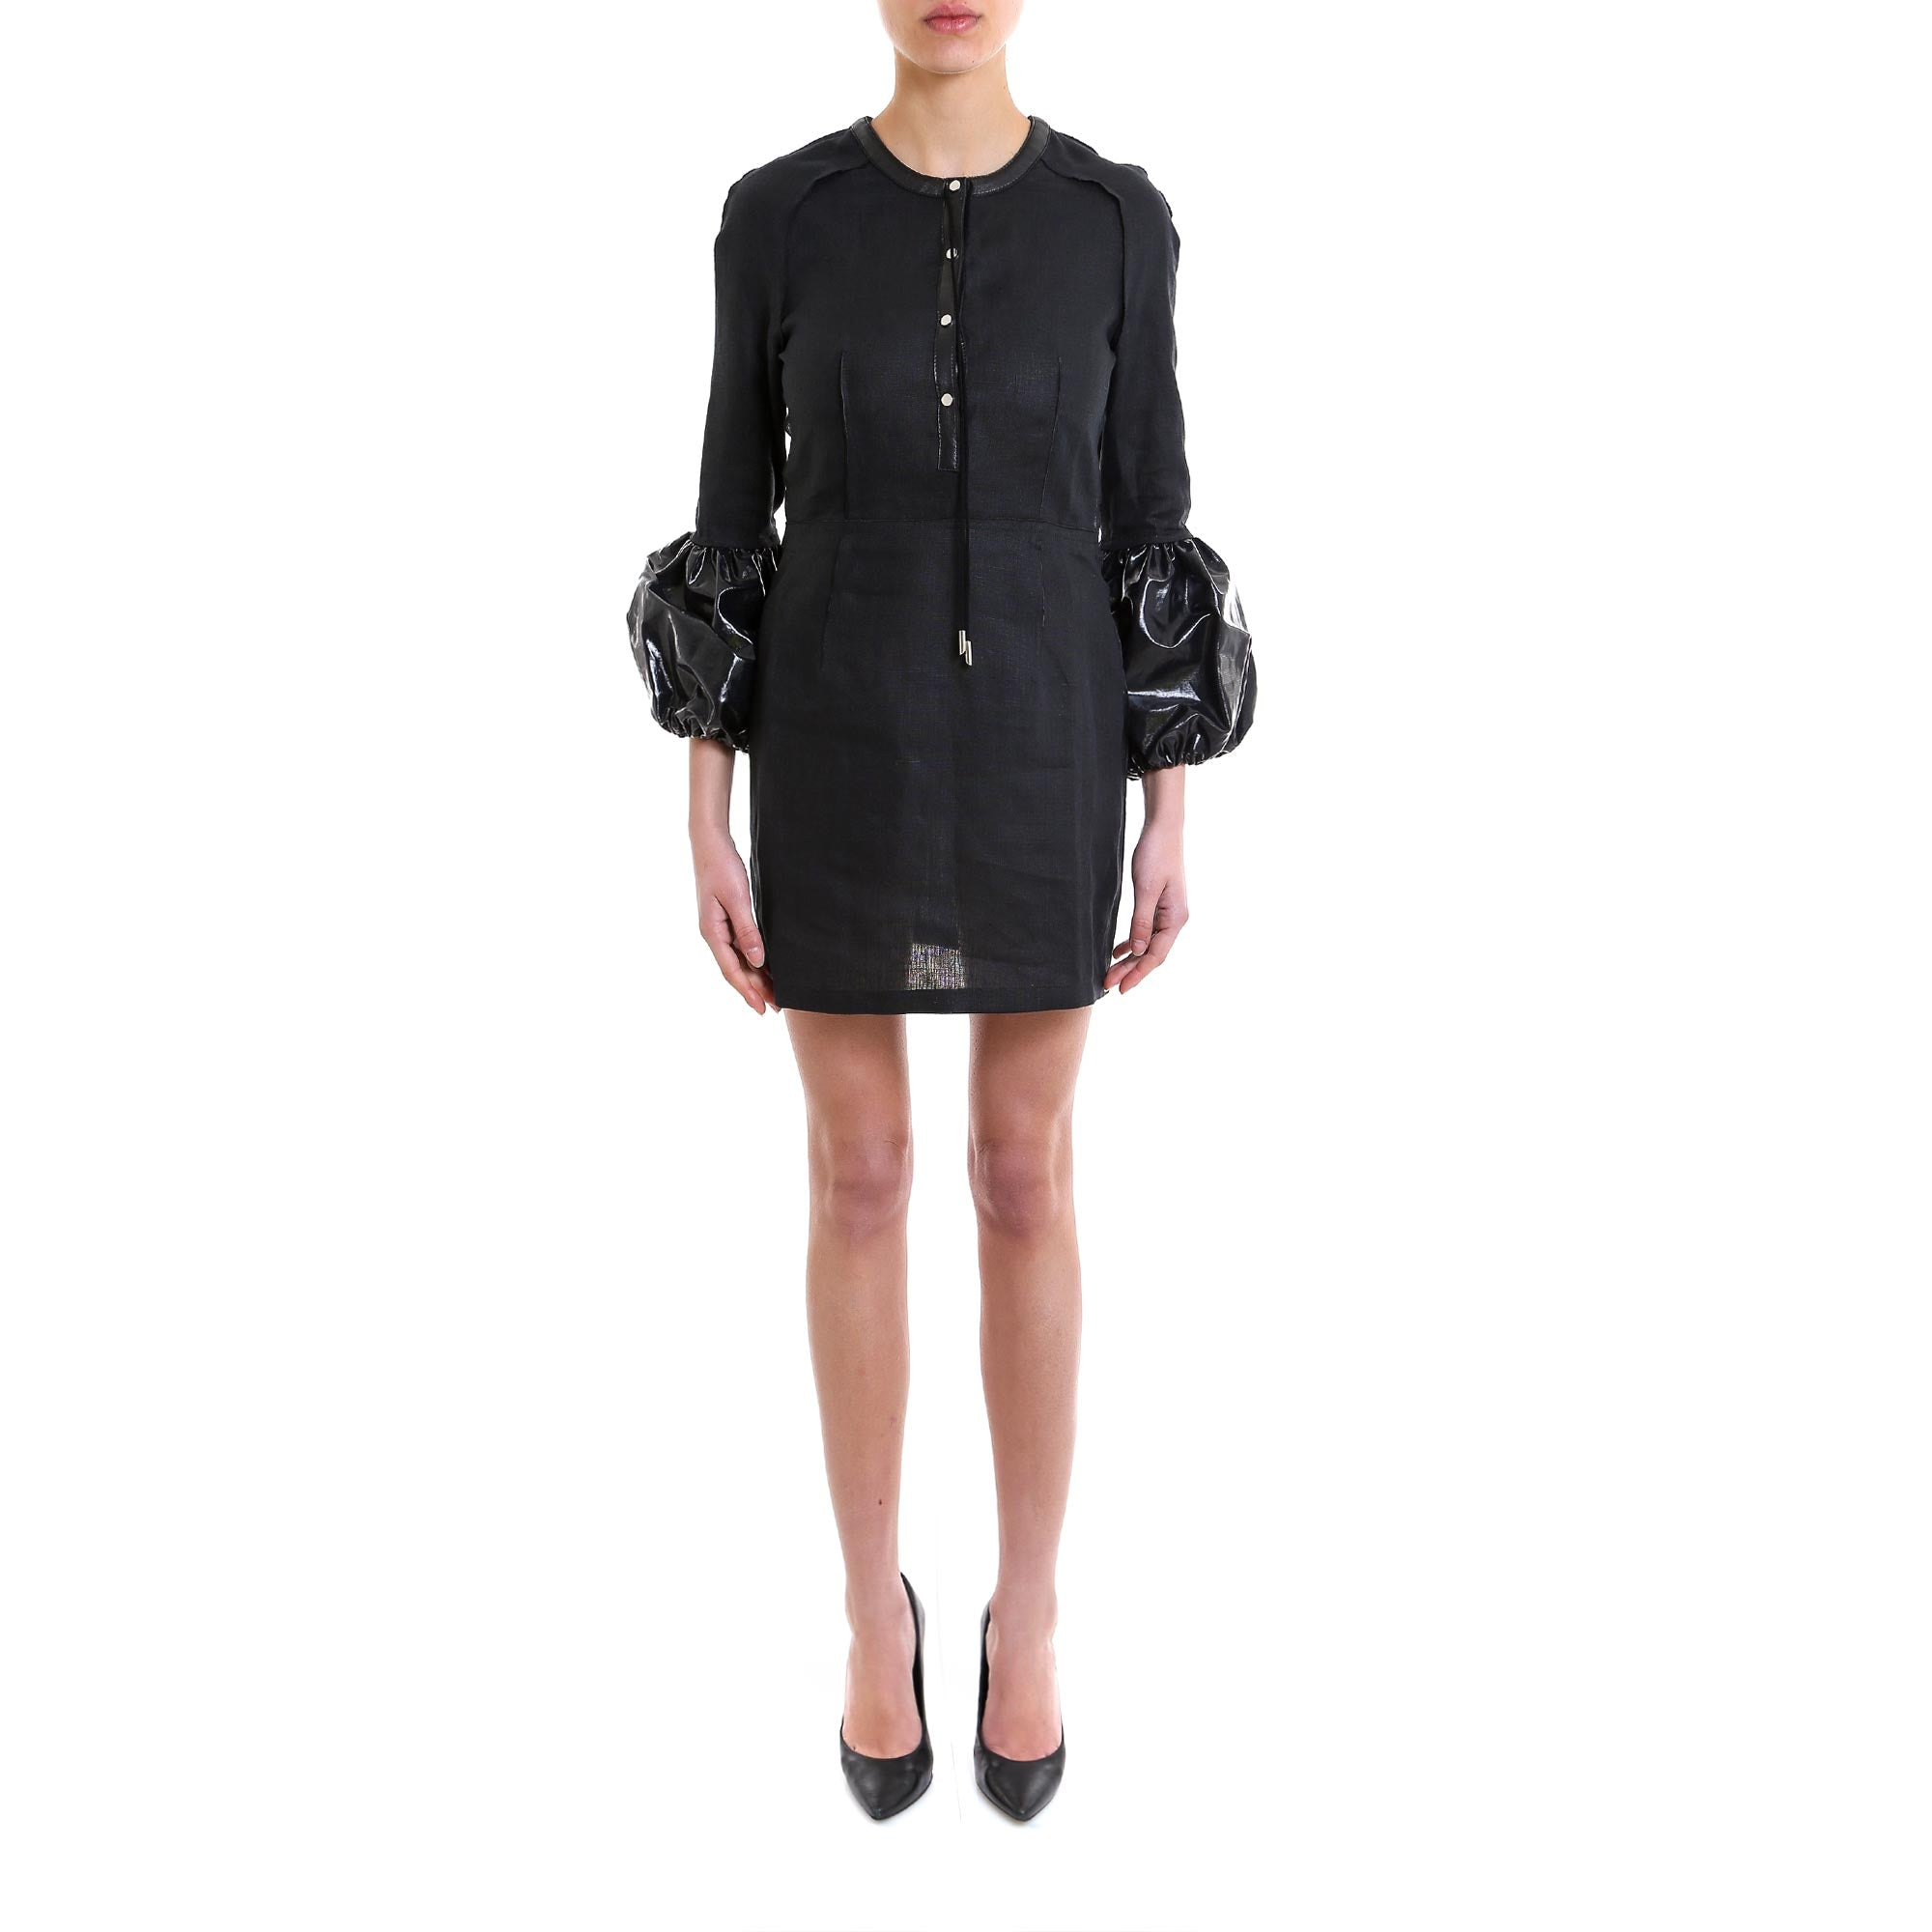 JW ANDERSON BALLOON SLEEVE MINI DRESS